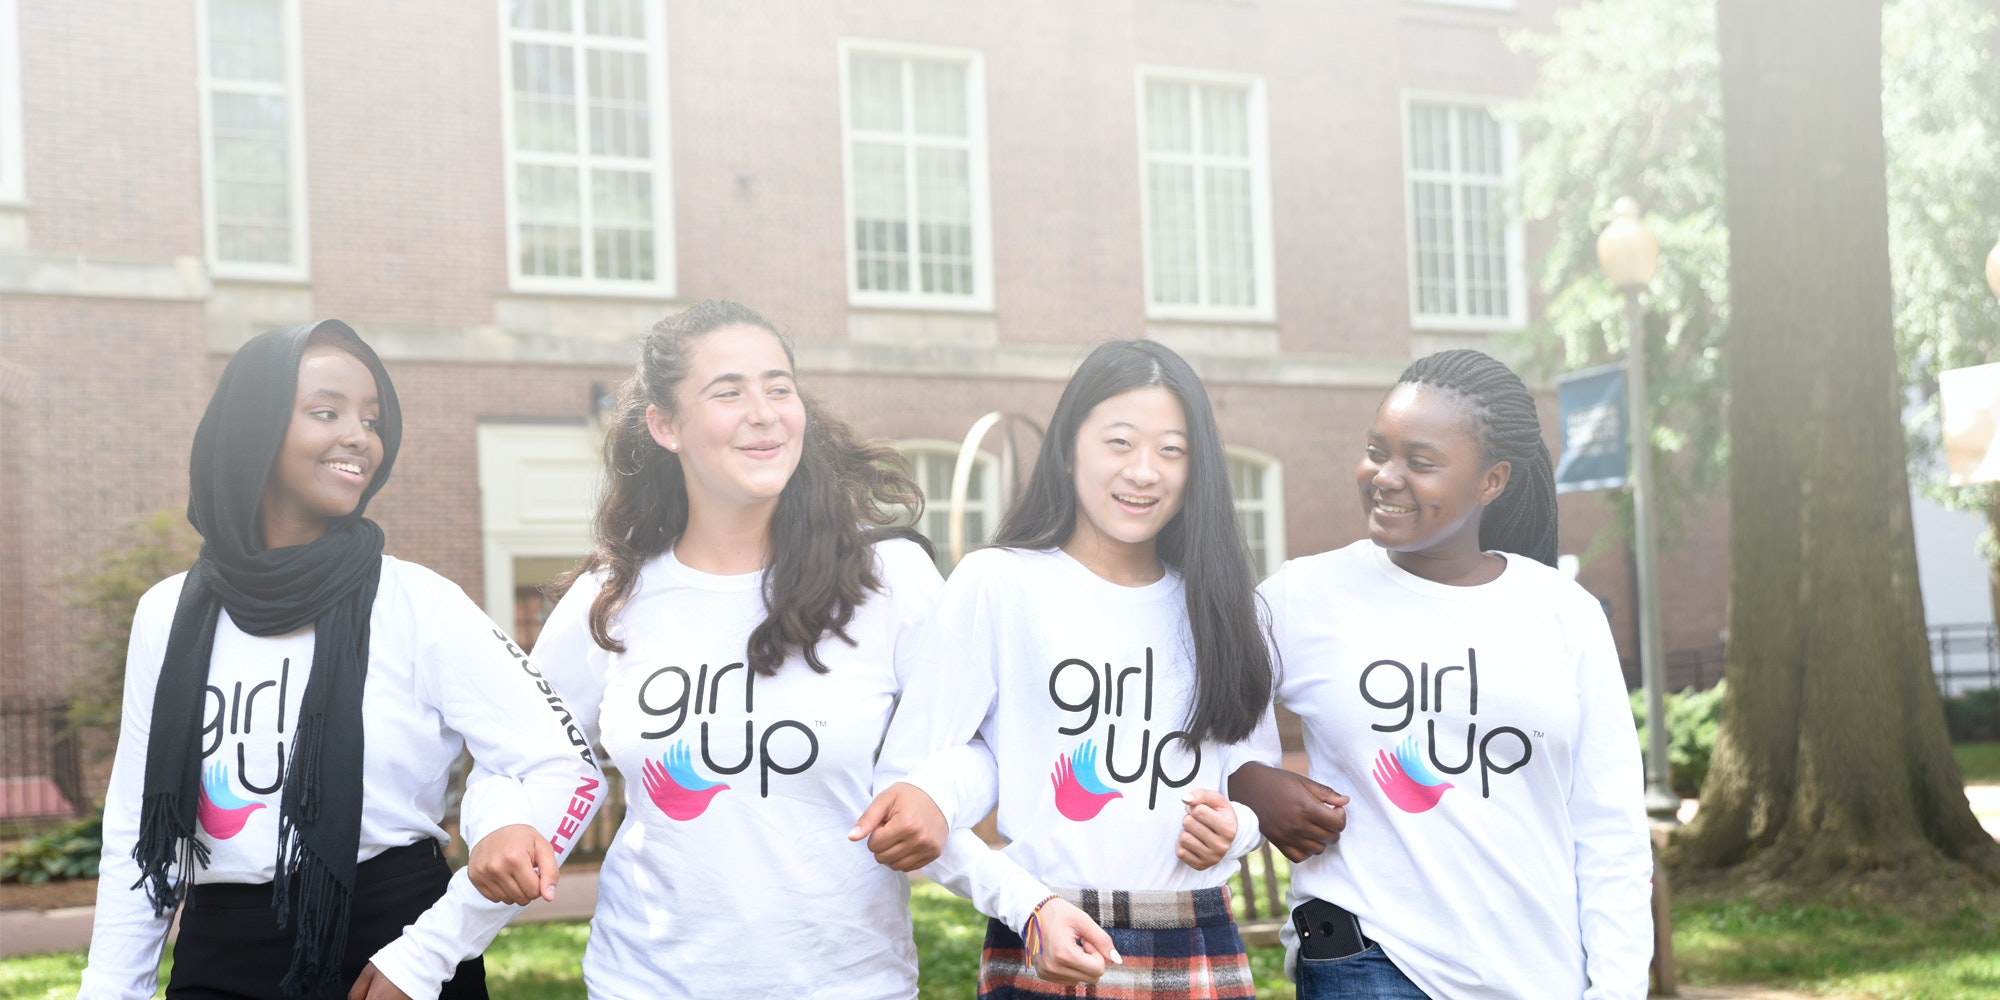 4 different ethnic Girl Up girls with the girl up shirt on (group picture)